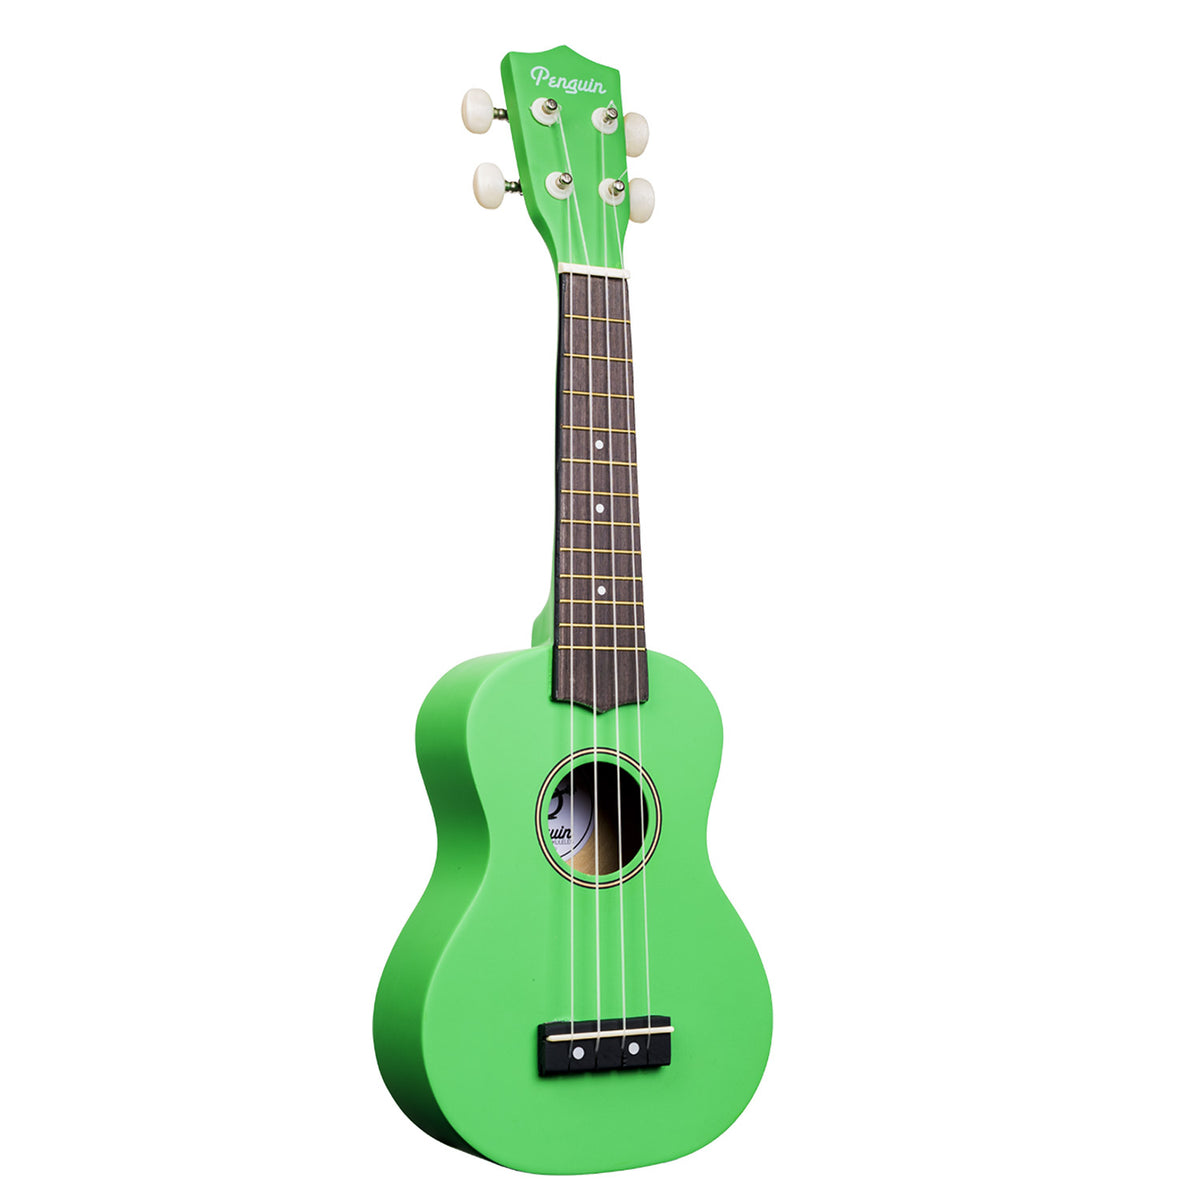 Penguin Solid Color Soprano Ukuleles